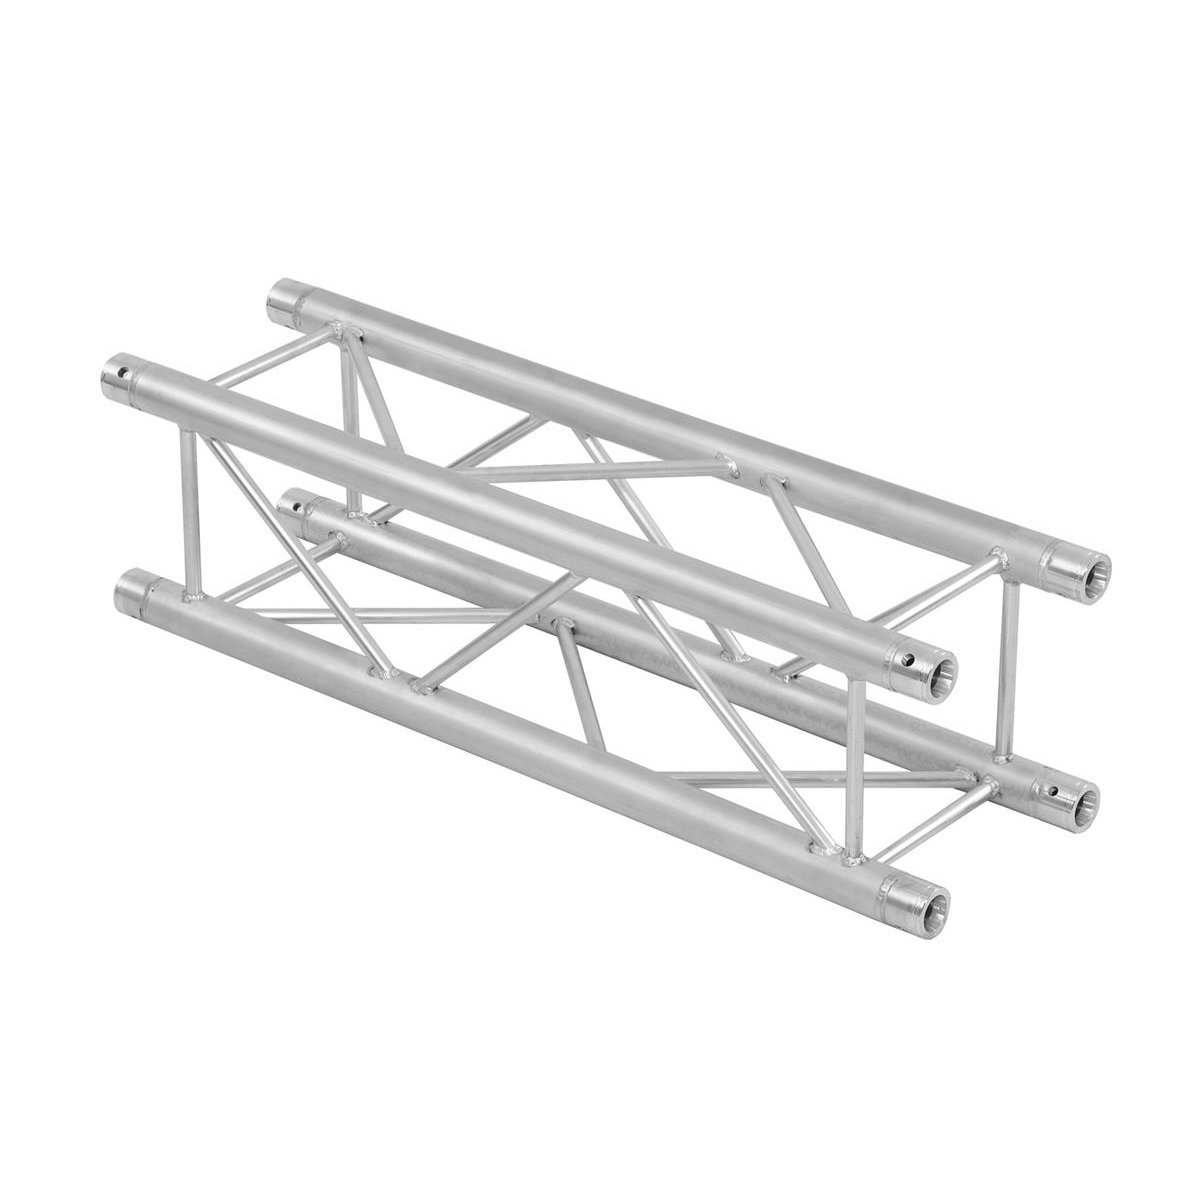 Alutruss Quadlock 6082-2000 4-Punkt-Traverse